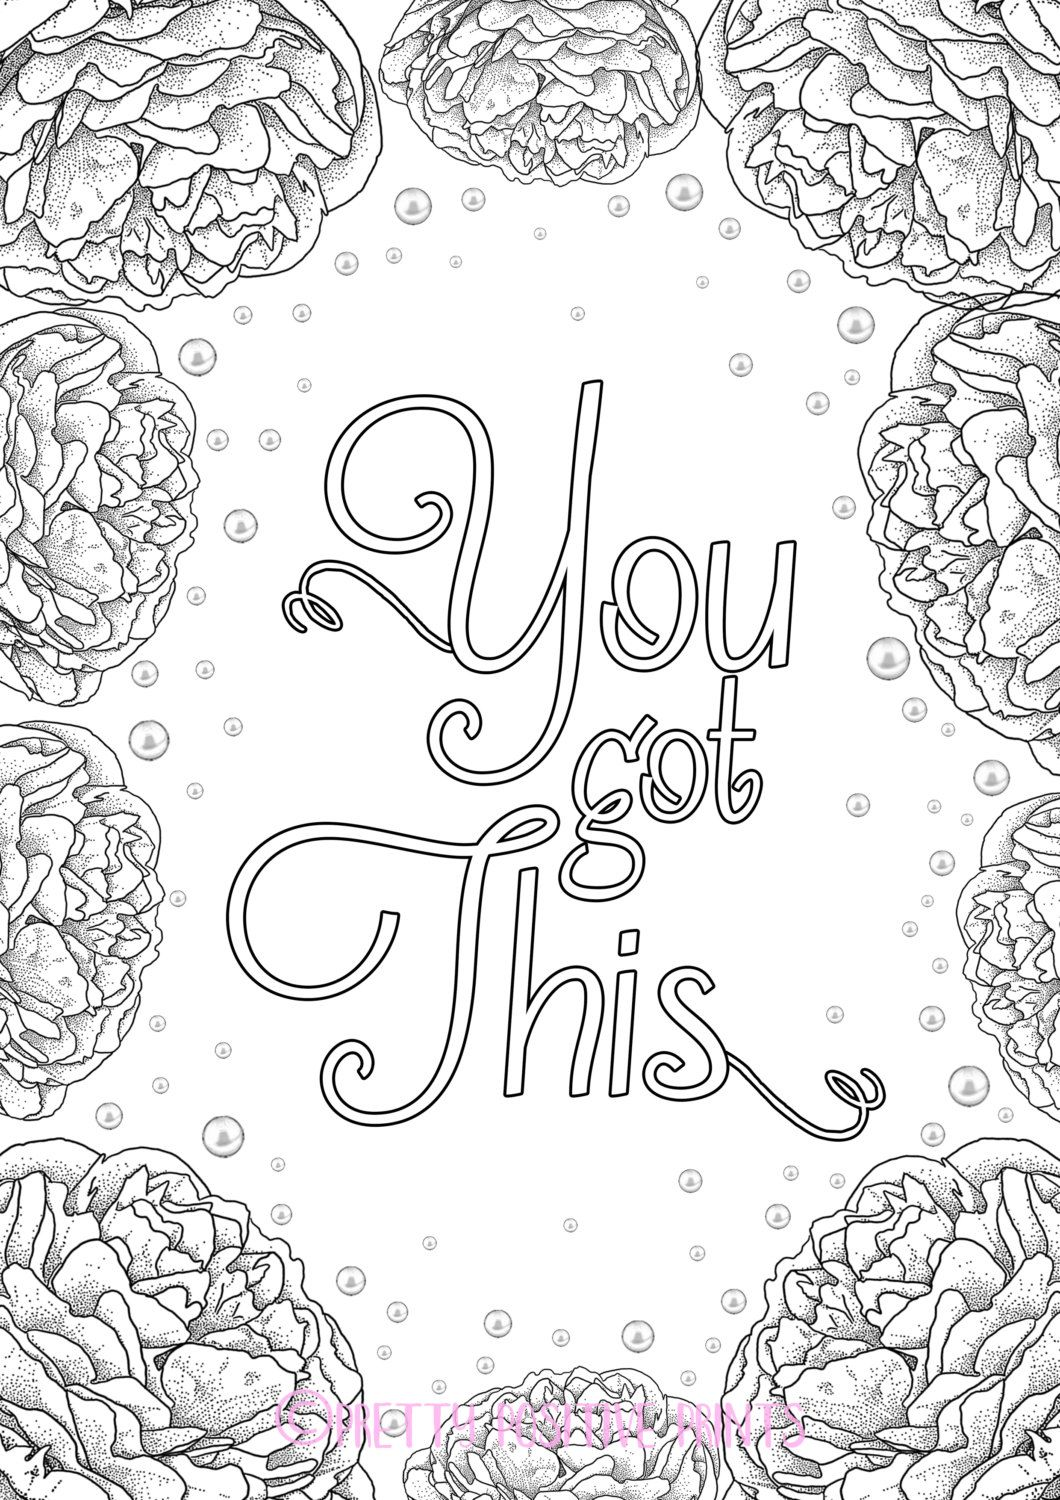 You Got This Colouring Quote Peonies And Pearls Wall Prints